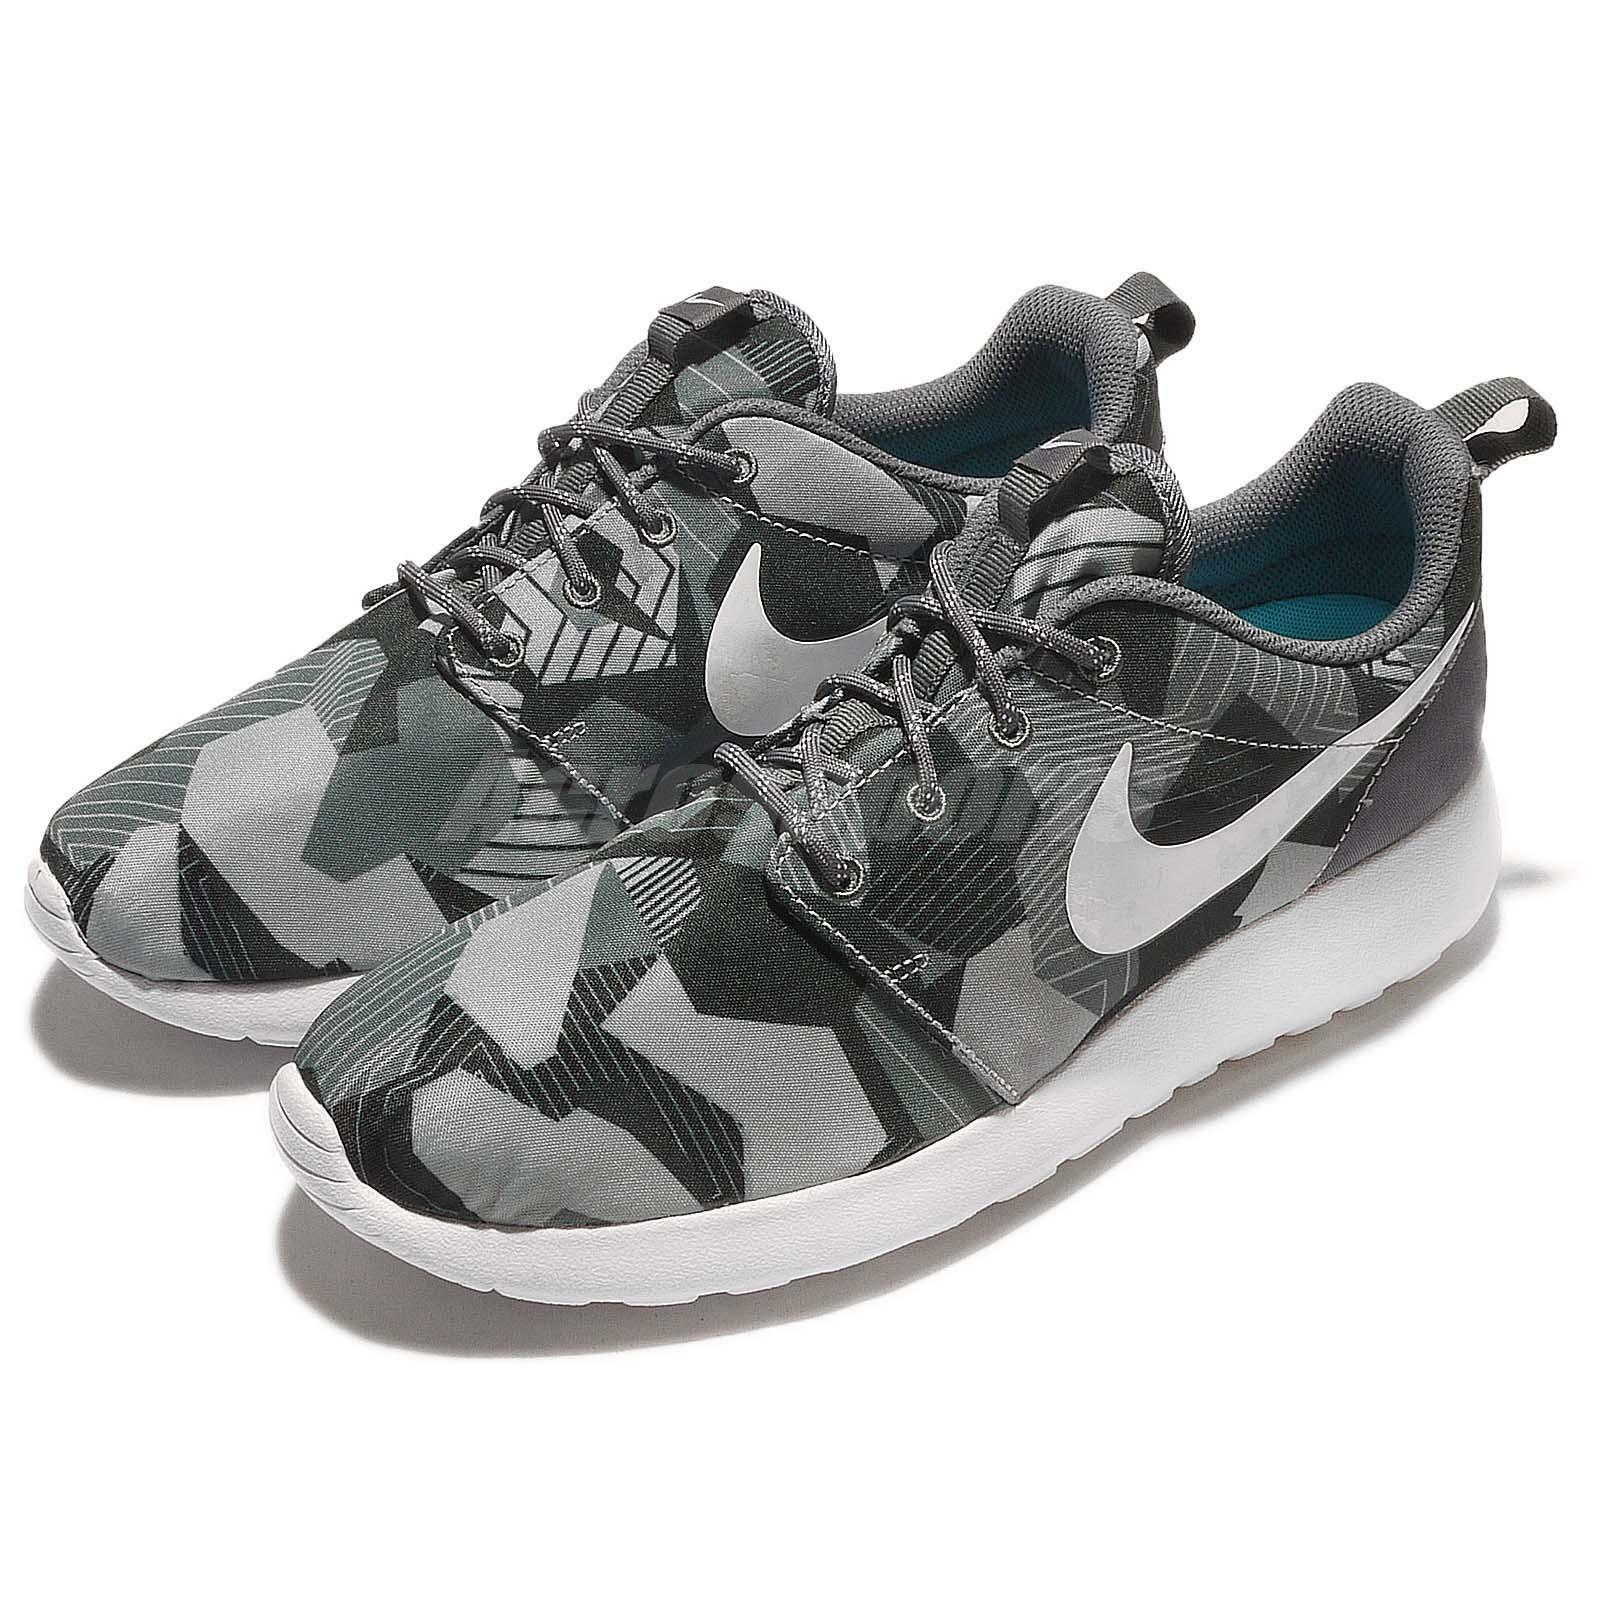 97facef6b58e Nike Roshe One Print Rosherun Grey White Camo NSW Mens Running Shoes  655206-020 85